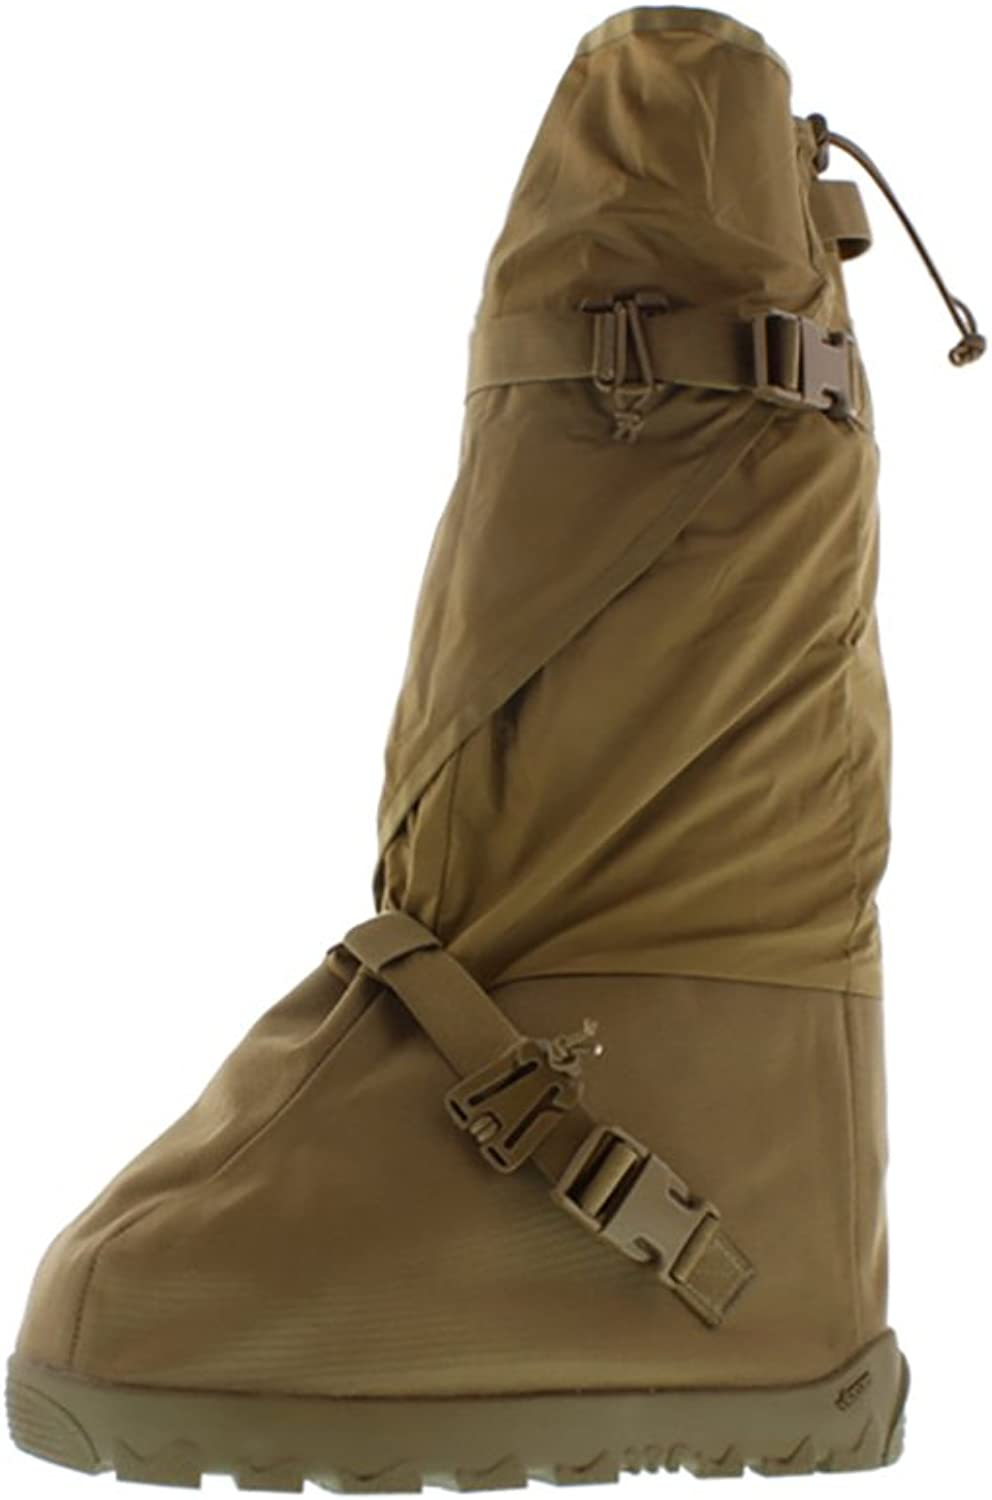 New Balance 1005COY Waterproof Insulated Knee Hi Flood Overboots Military Boots